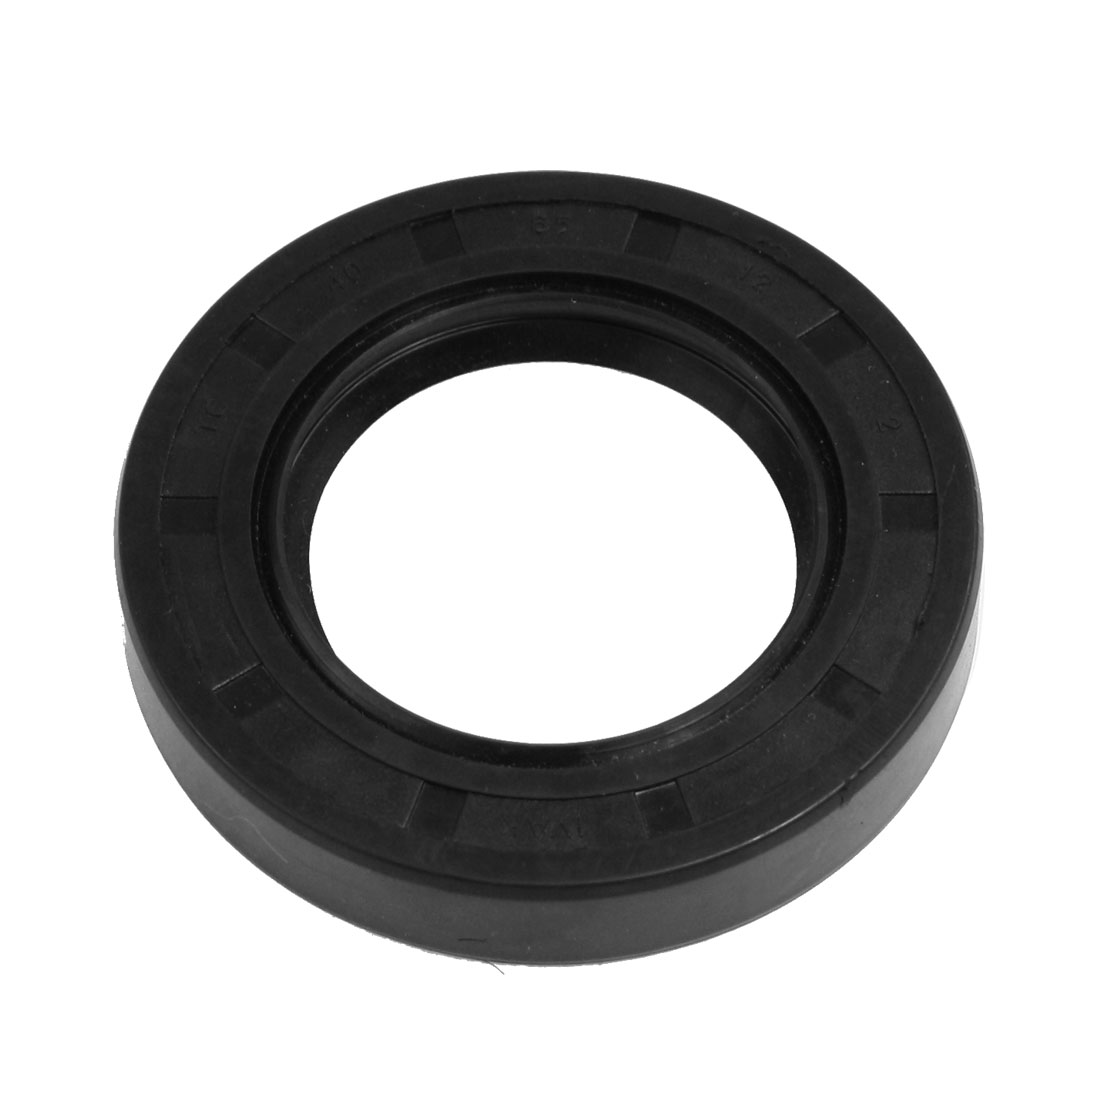 Steel Spring Nitrile Rubber Double Lip Oil Seal TC 40mm x 65mm x 12mm